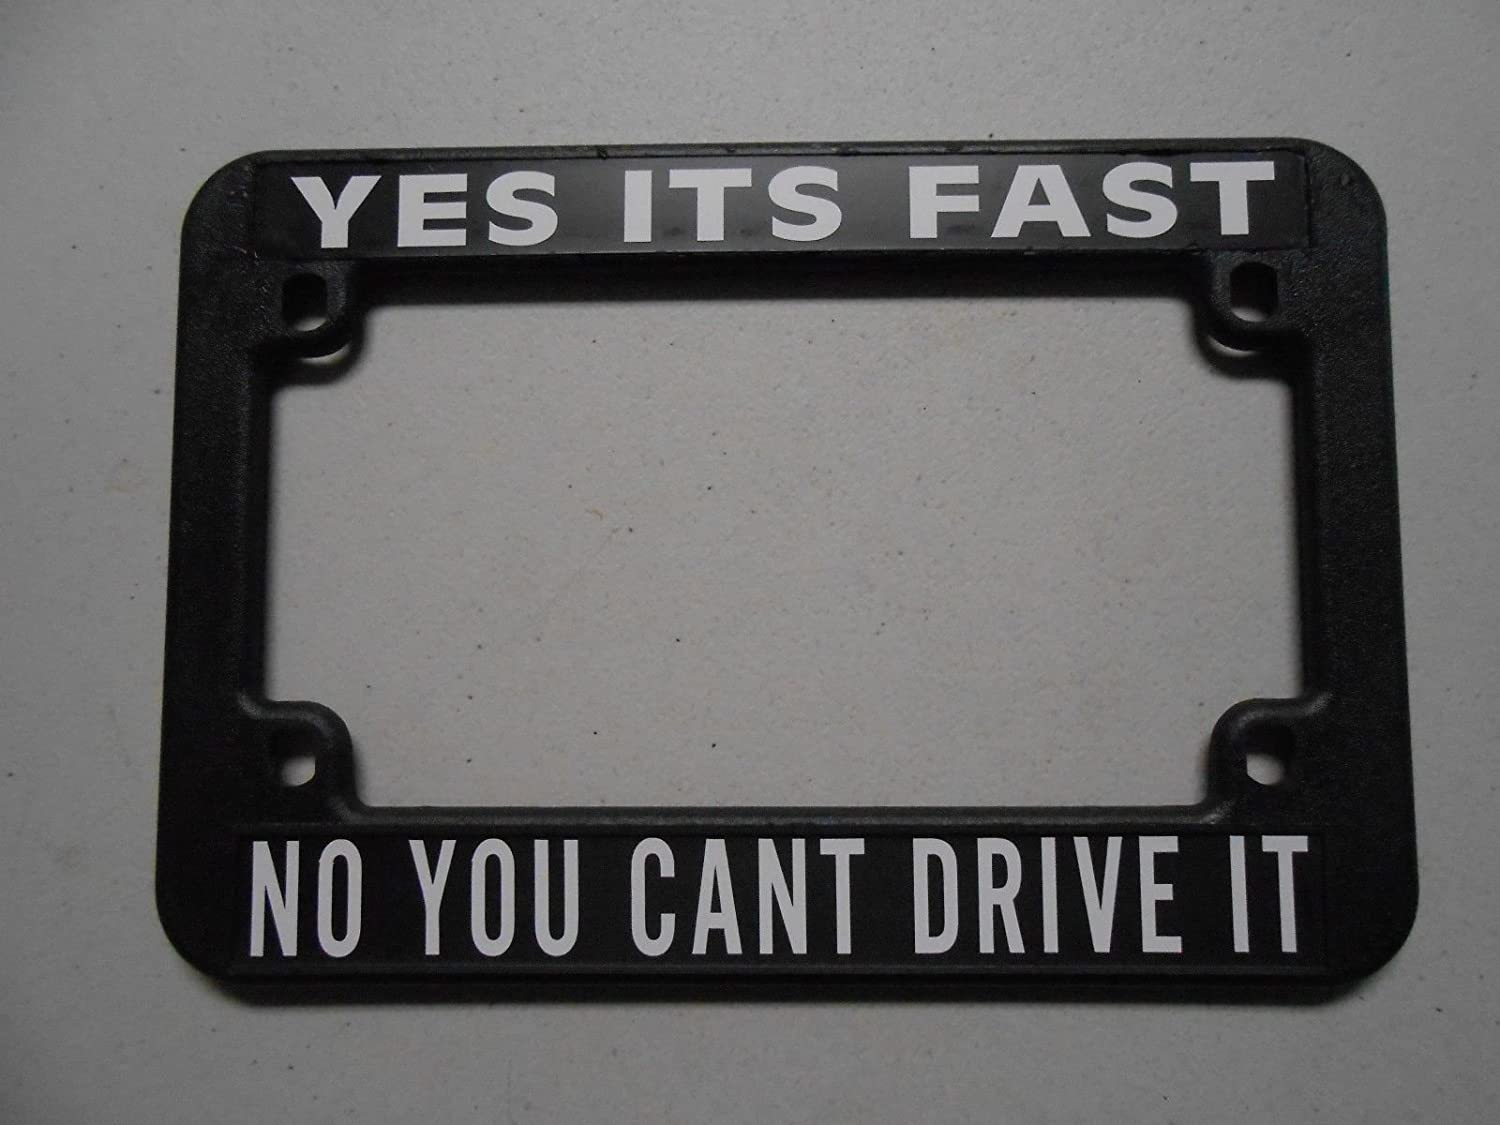 MOTORCYCLE LICENSE PLATE FRAME'YES ITS FAST NO YOU CANT DRIVE IT' Motown Automotive Design [Motown Automotive Design]